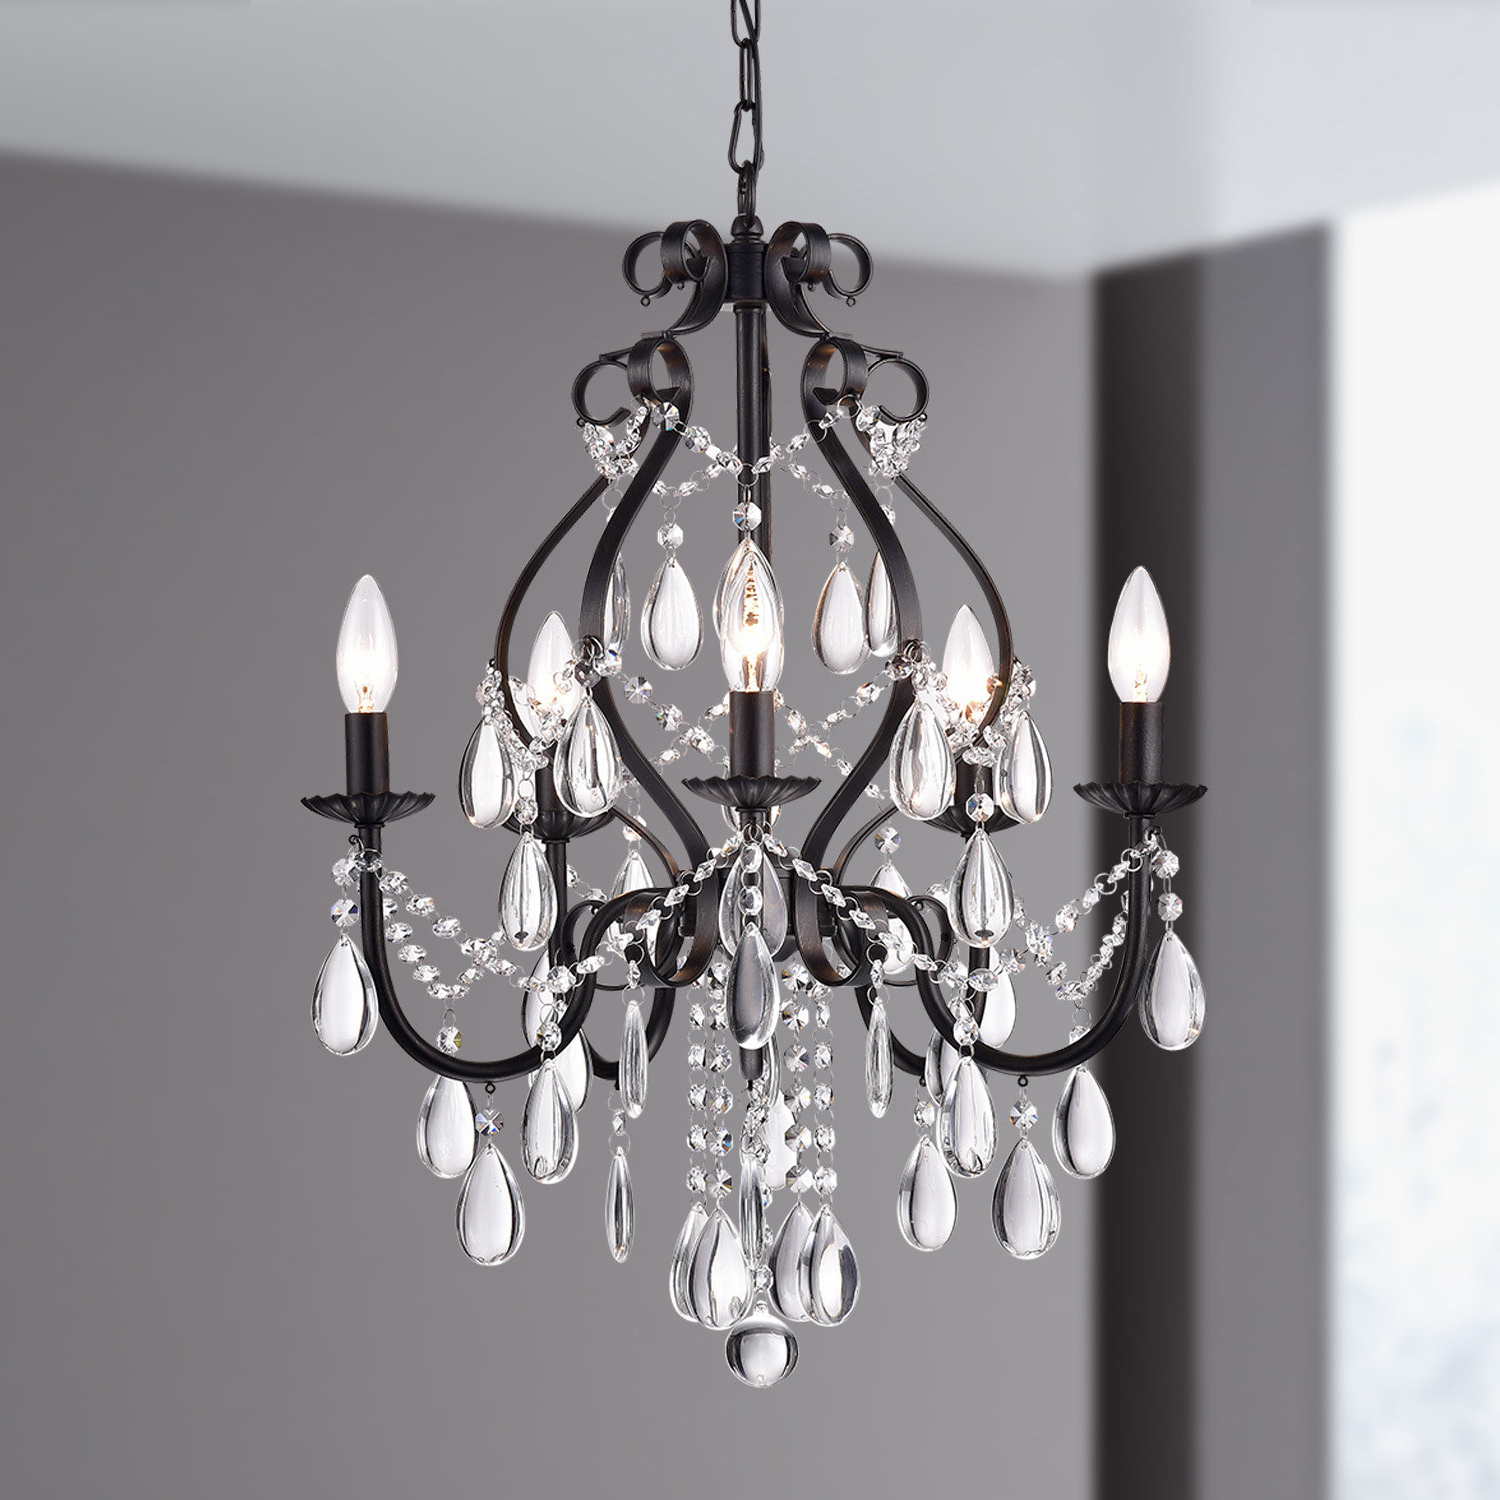 Newest Axl 5 Light Candle Style Chandelier Intended For Blanchette 5 Light Candle Style Chandeliers (Gallery 10 of 20)